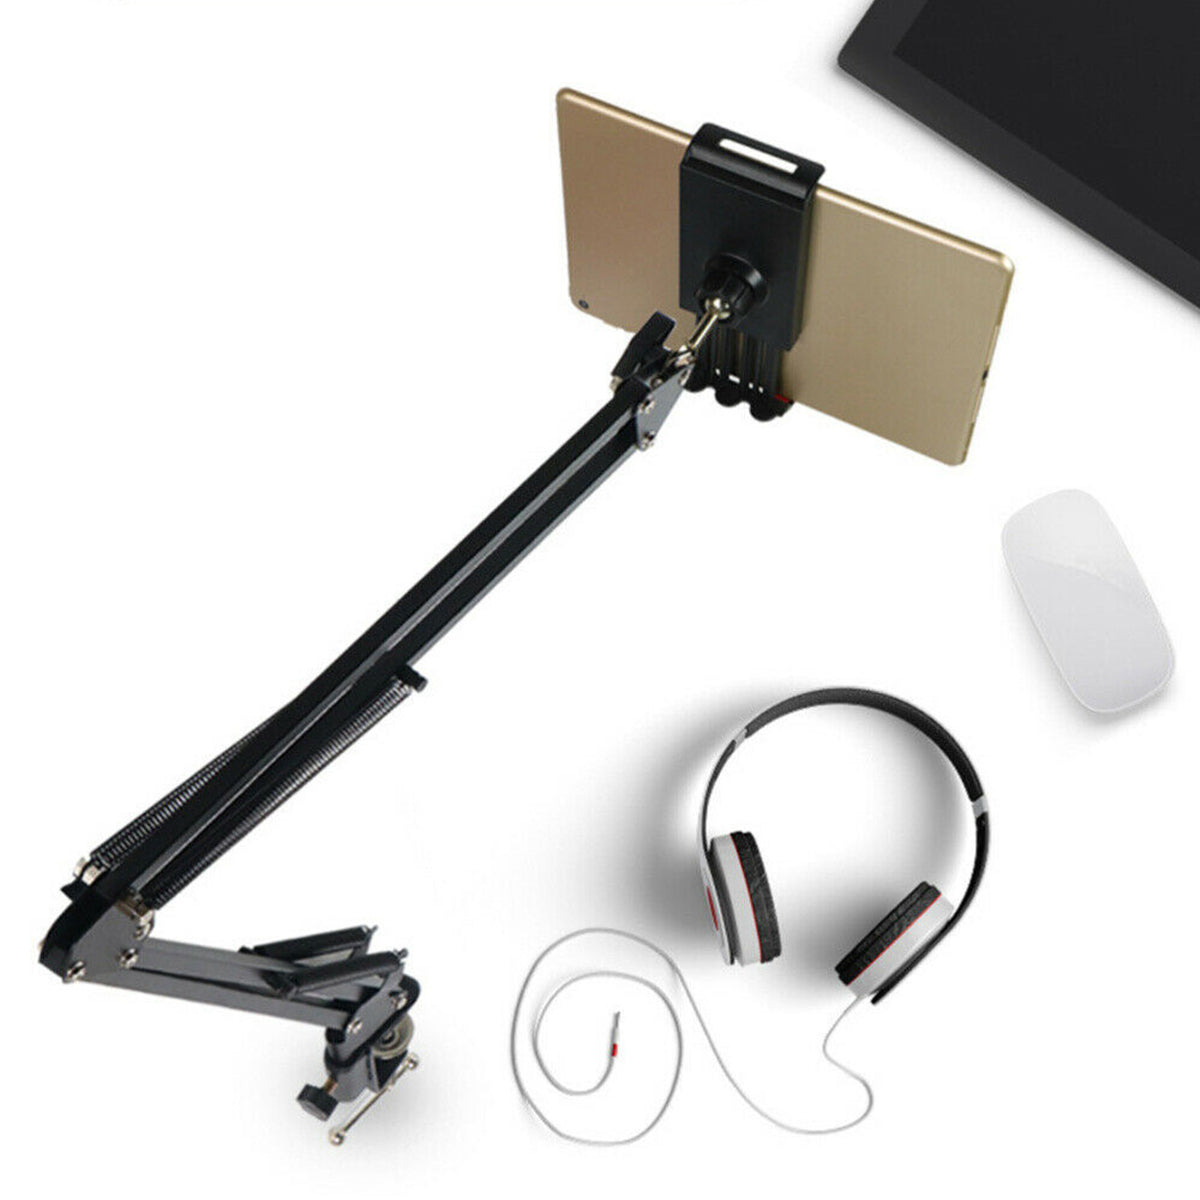 Desktop Adjustable 180° Lazy Tablet Stand Phone Holder Bracket Durable Clip for Smart Phone Tablet With Width Between 12cm and 18cm